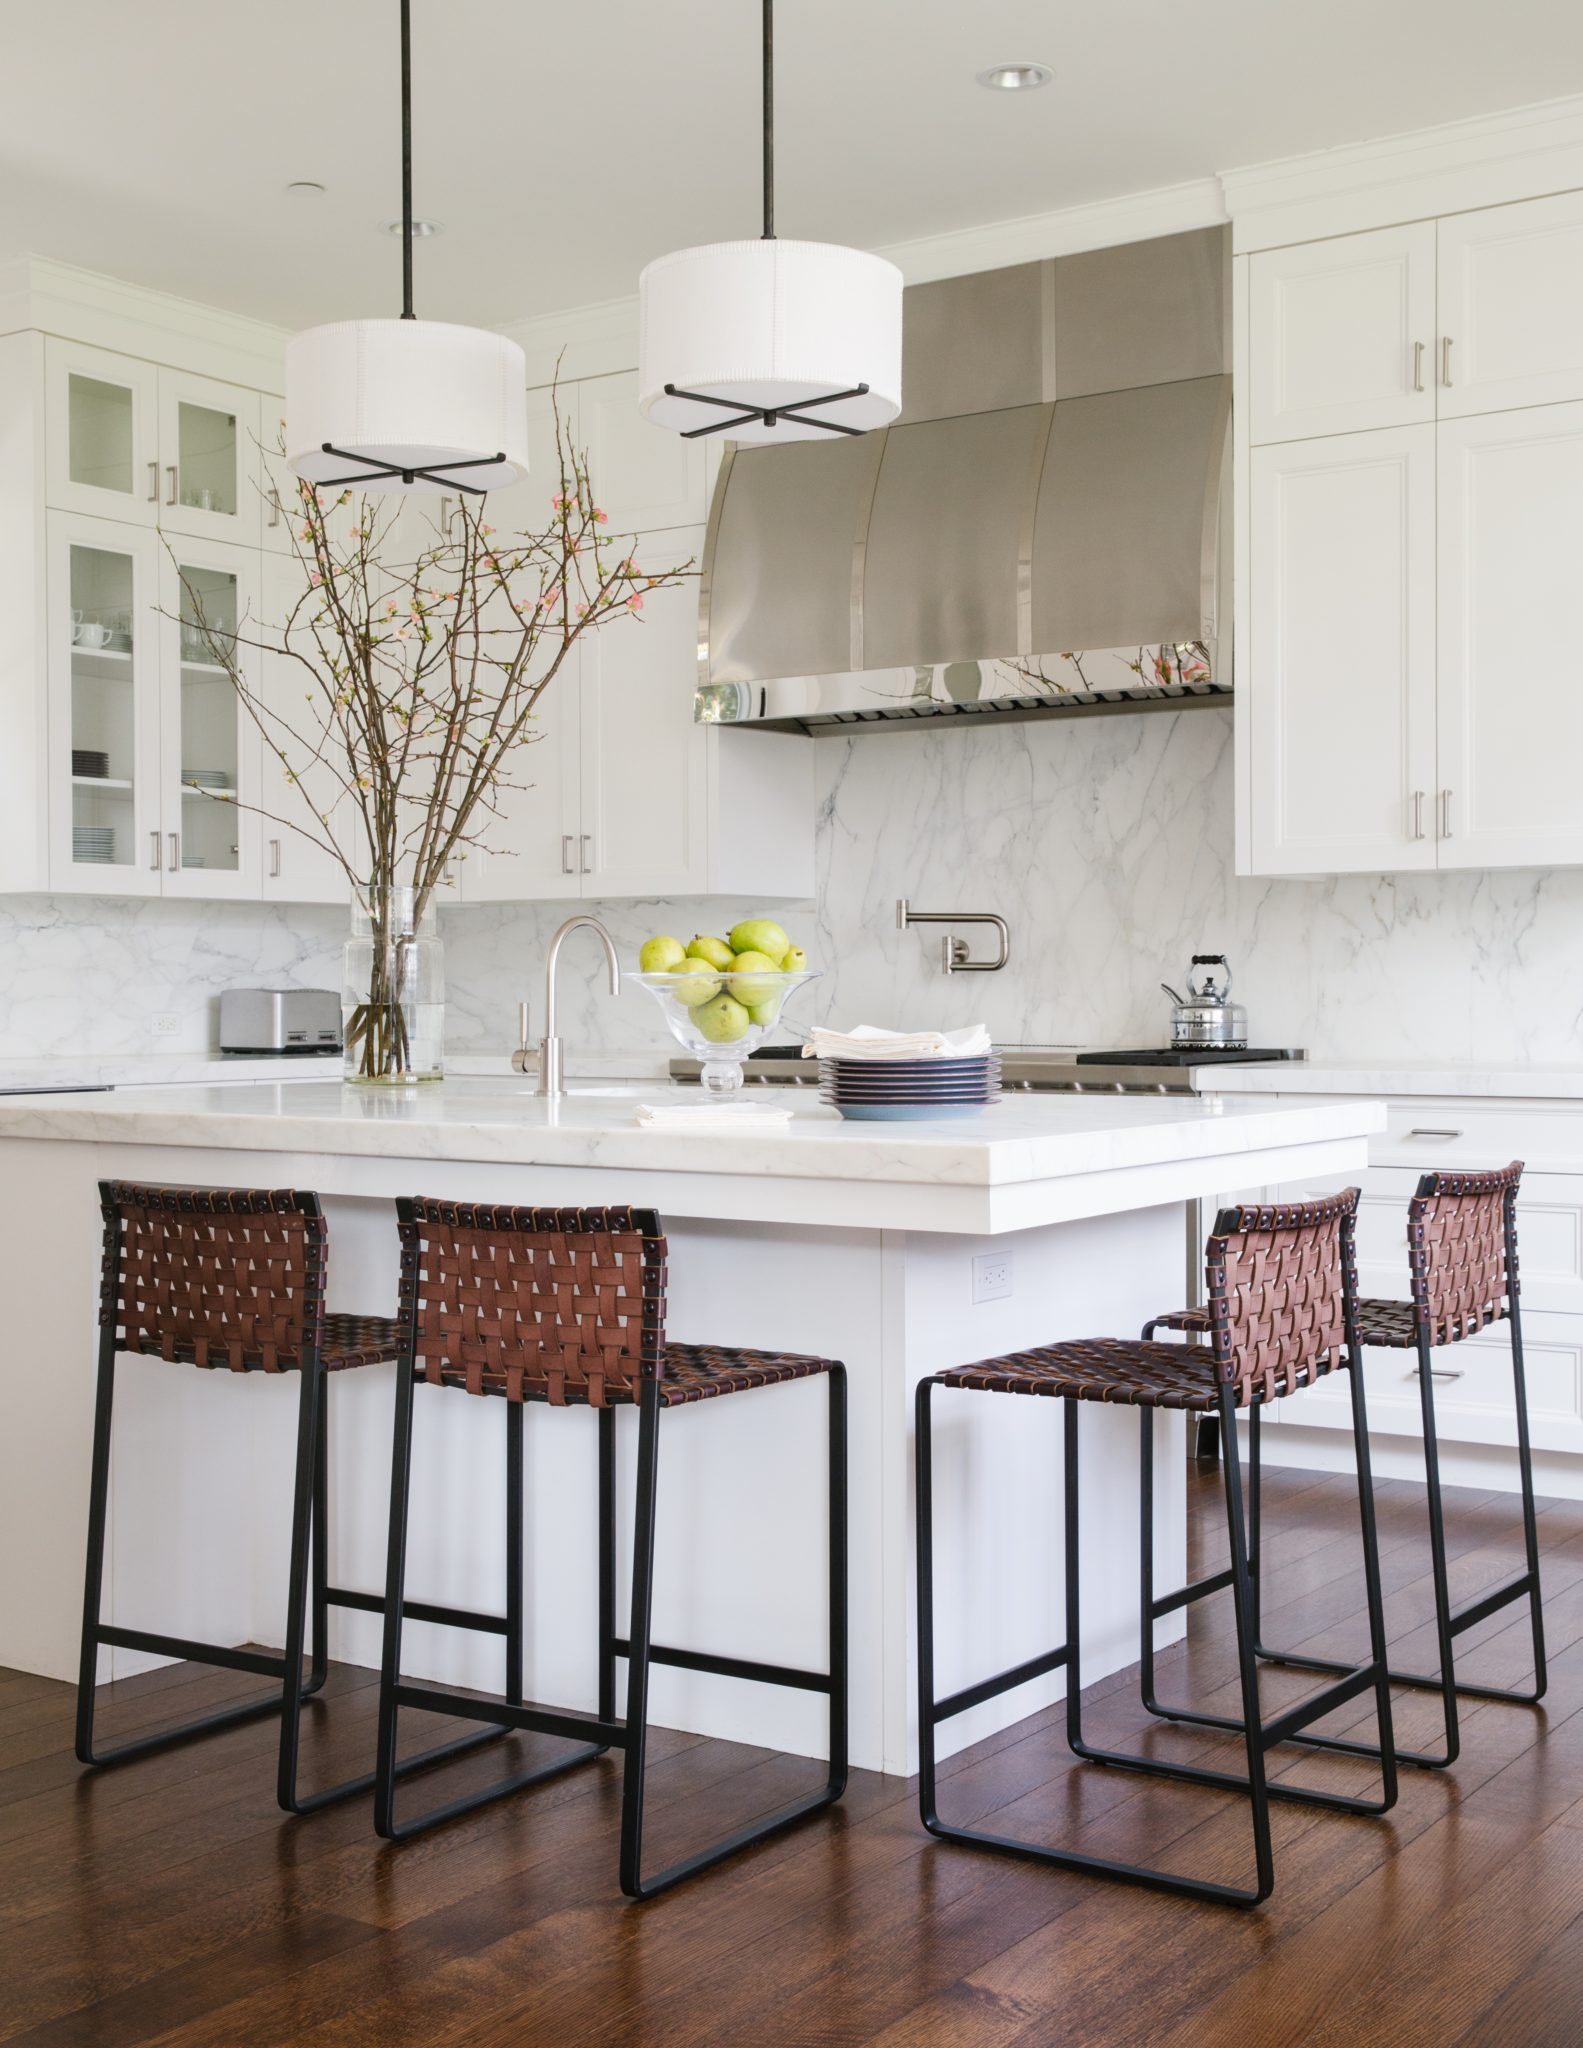 Kitchen in Brentwood by Maine Design